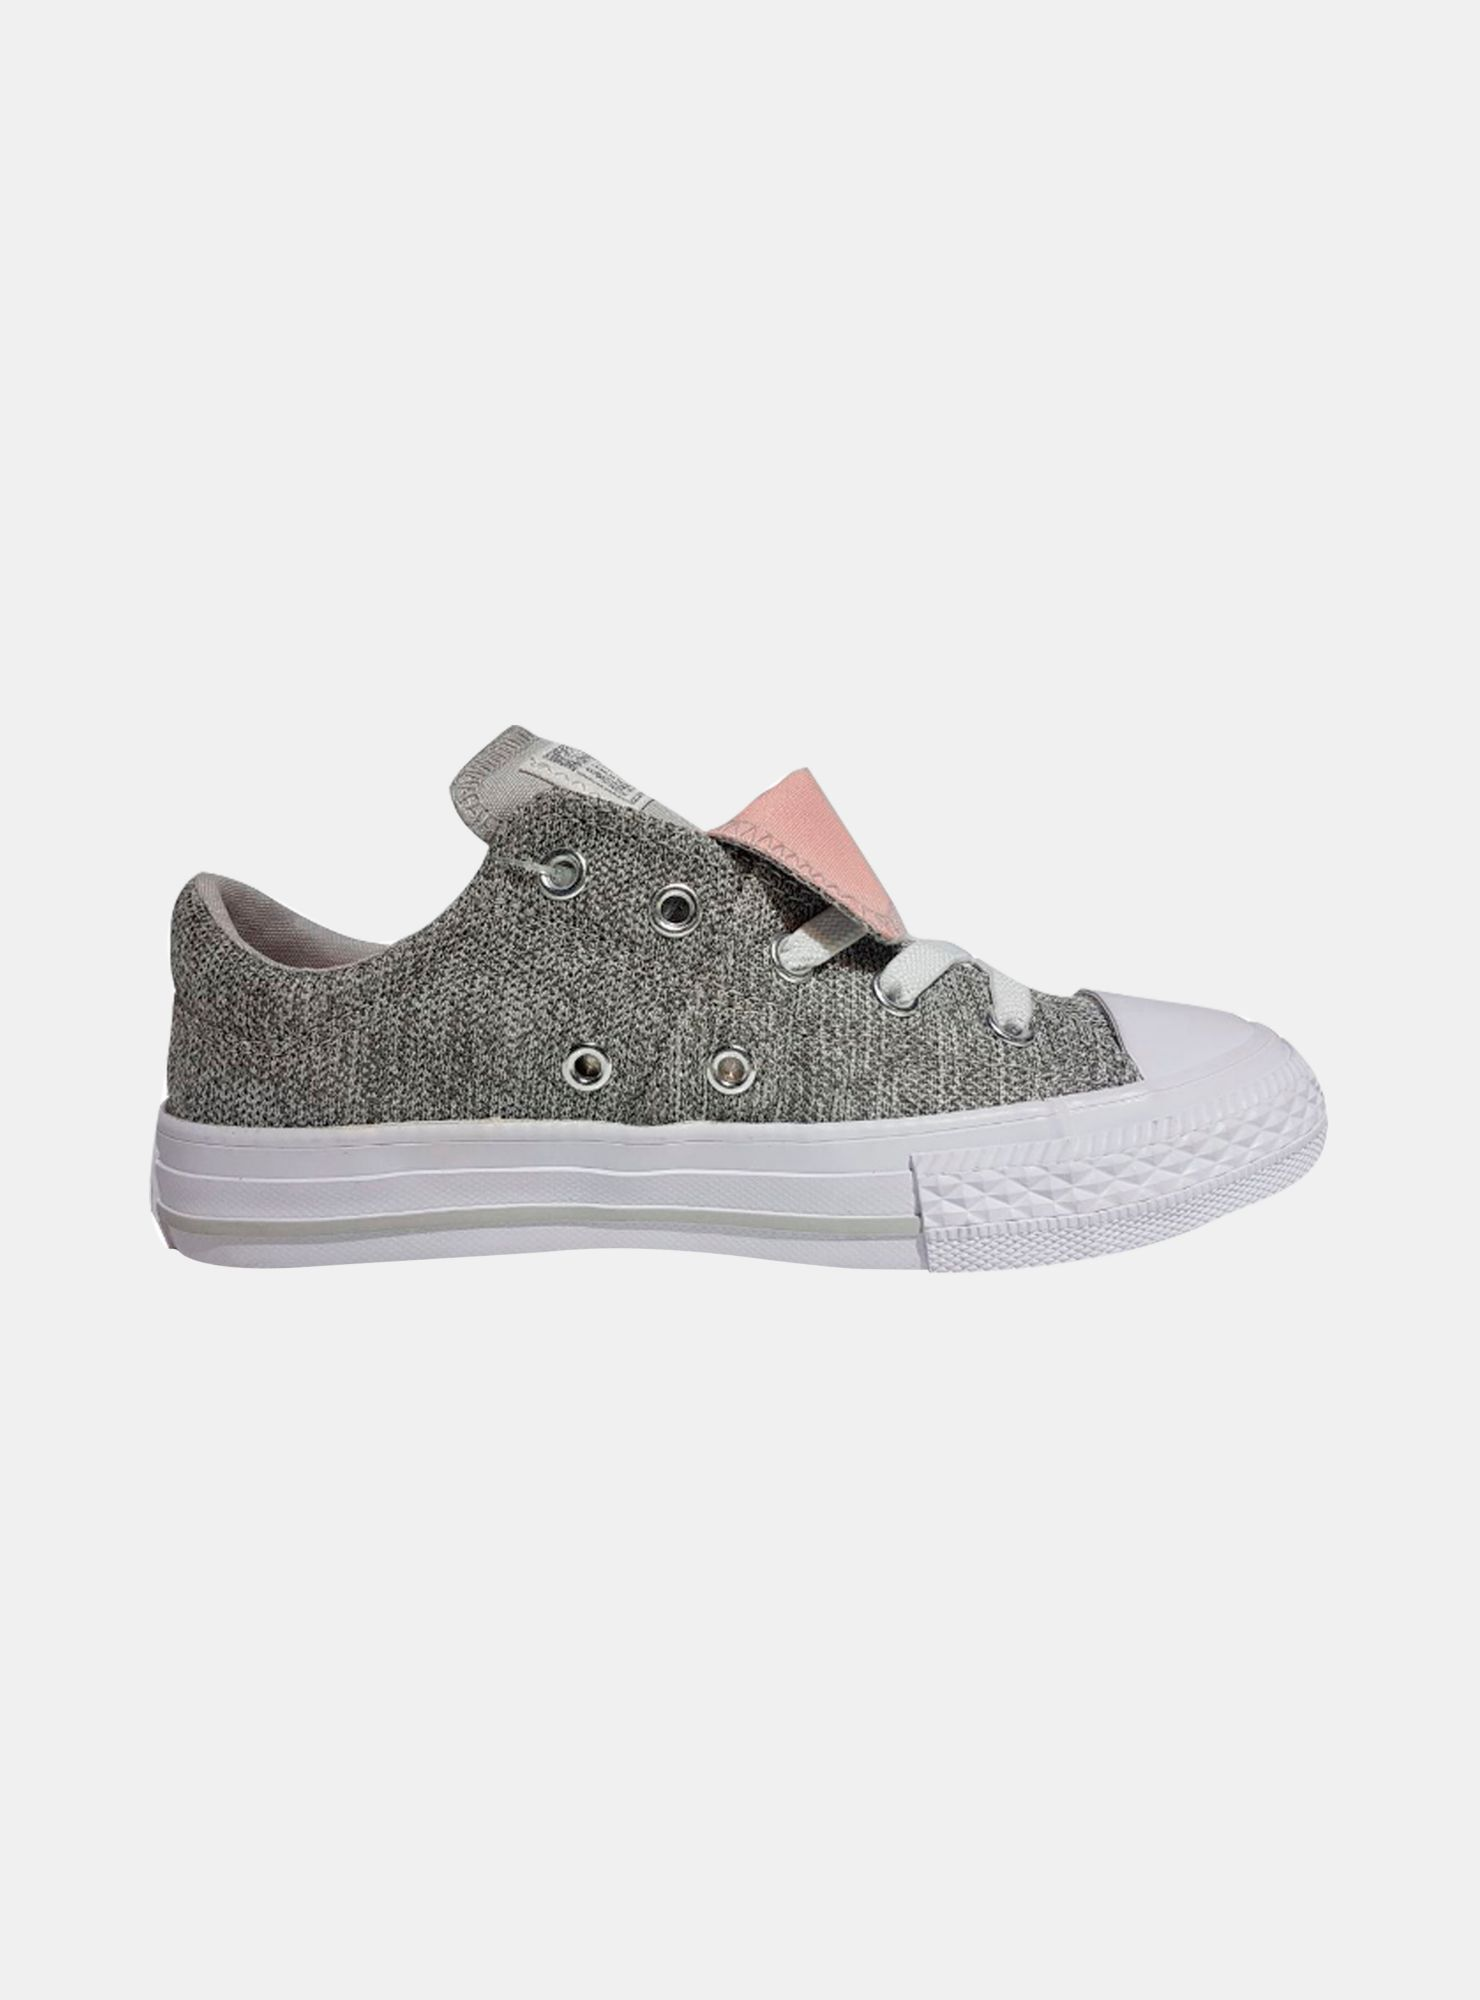 converse old school mujer